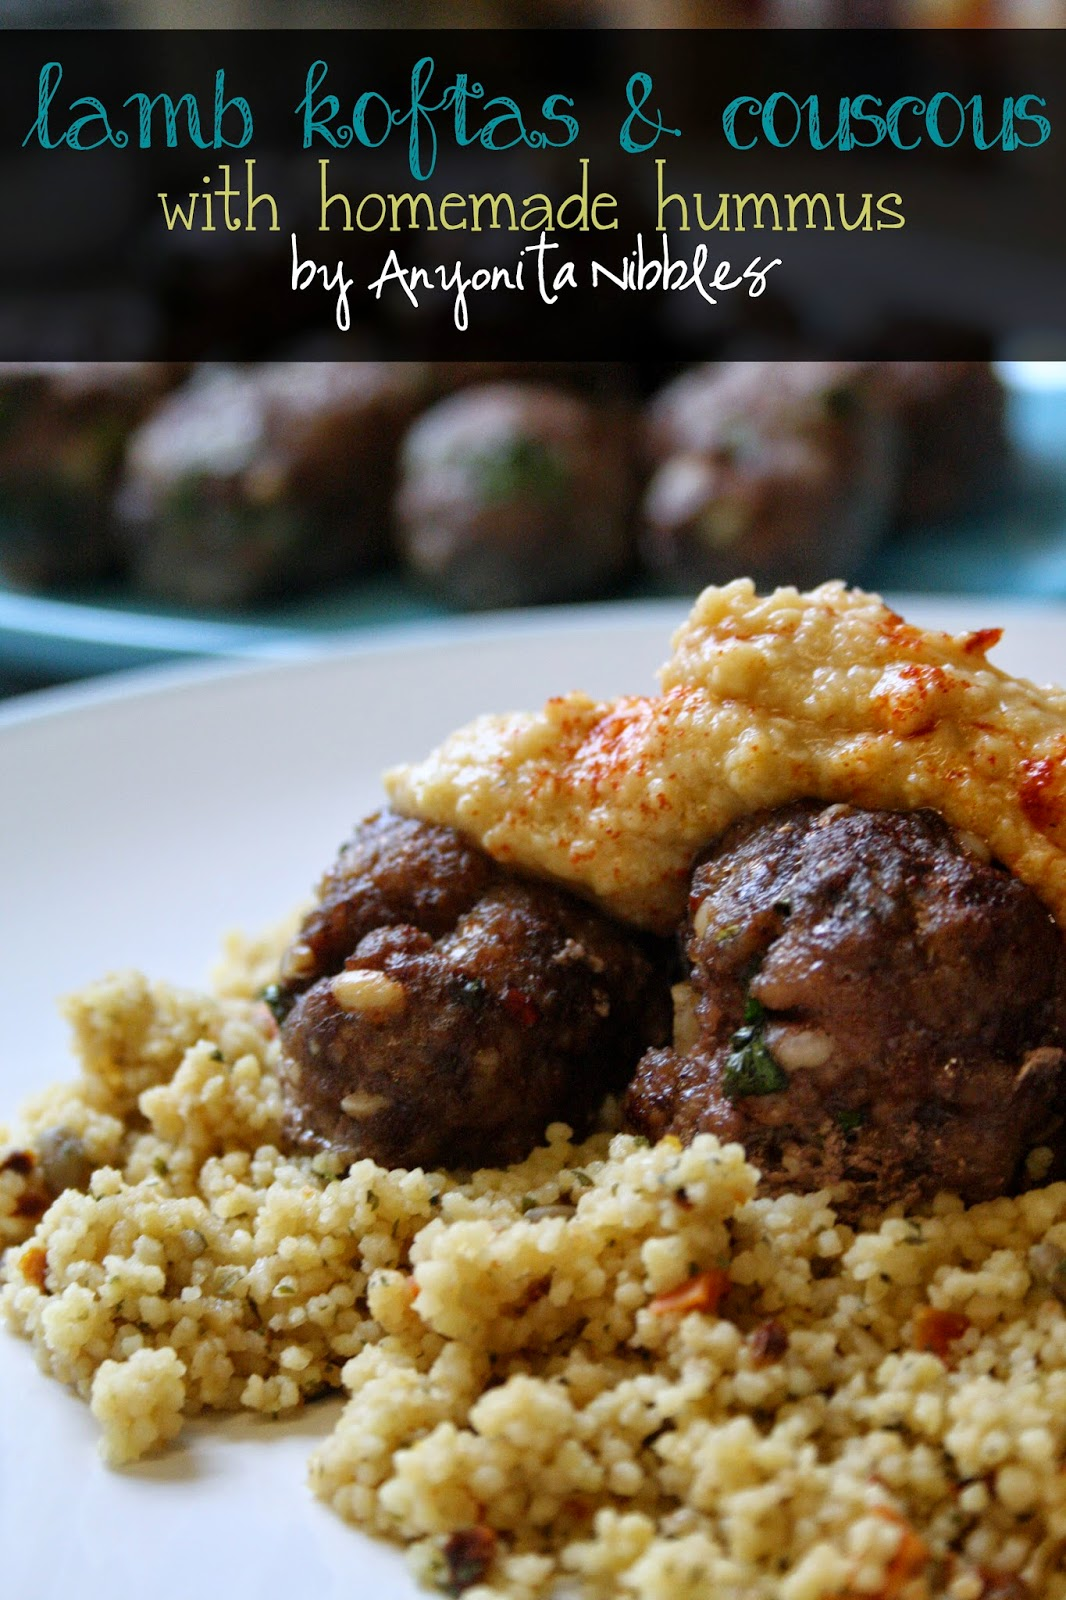 With warm Middle Eastern spices, these lamb koftas are gluten free, hearty & filling. From Anyonita Nibbles